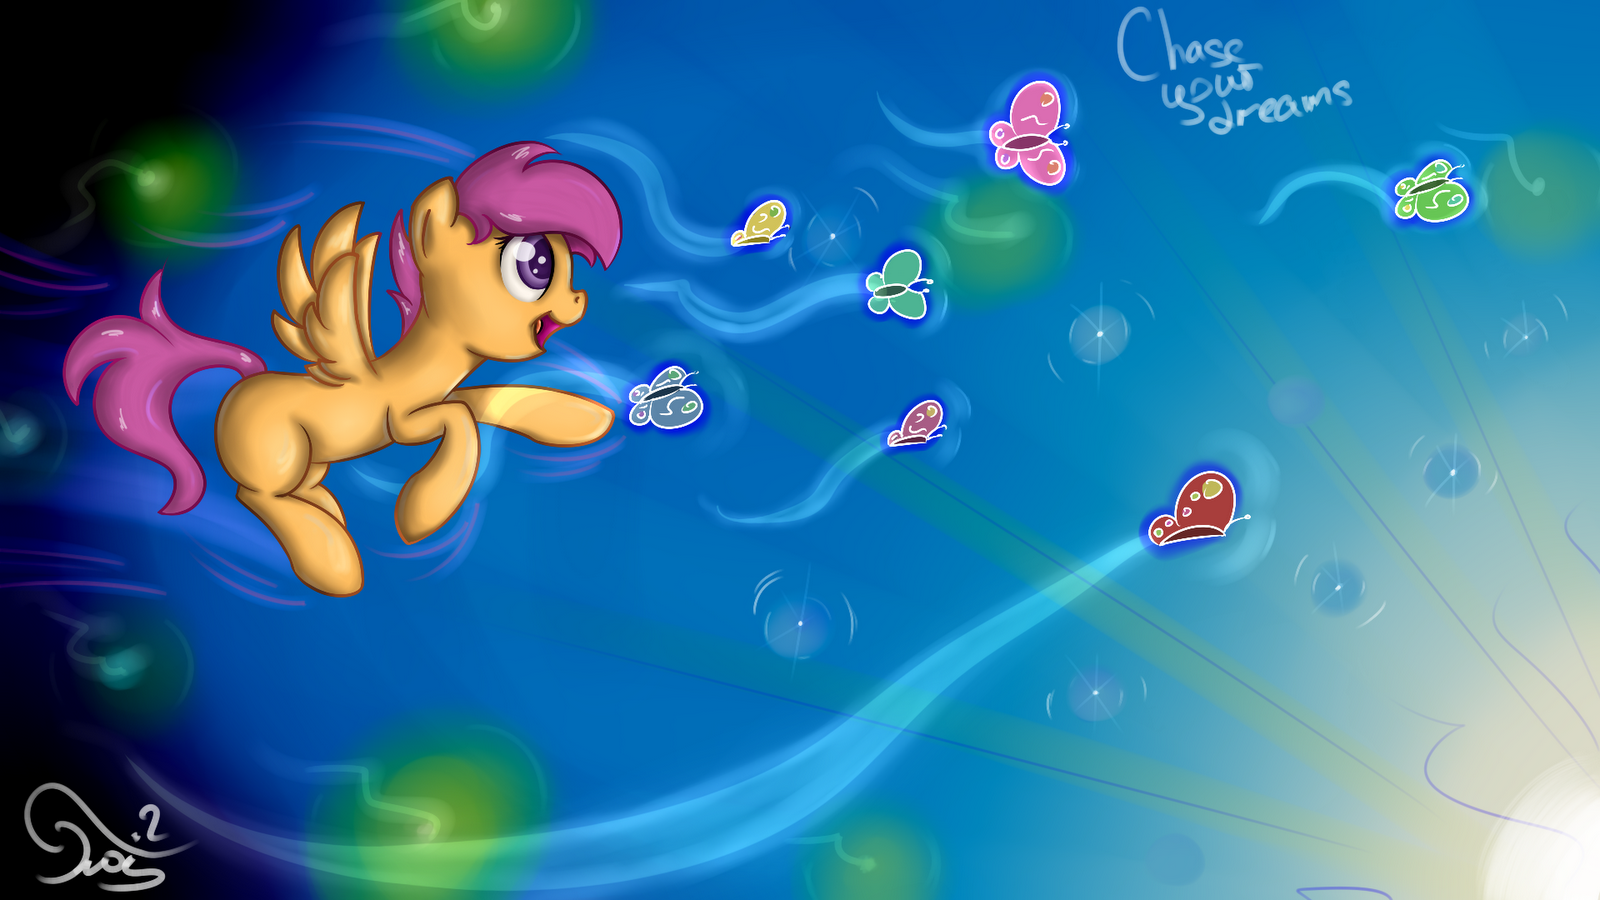 chase_your_dreams_by_twilightsquare-d4olfti.png - -